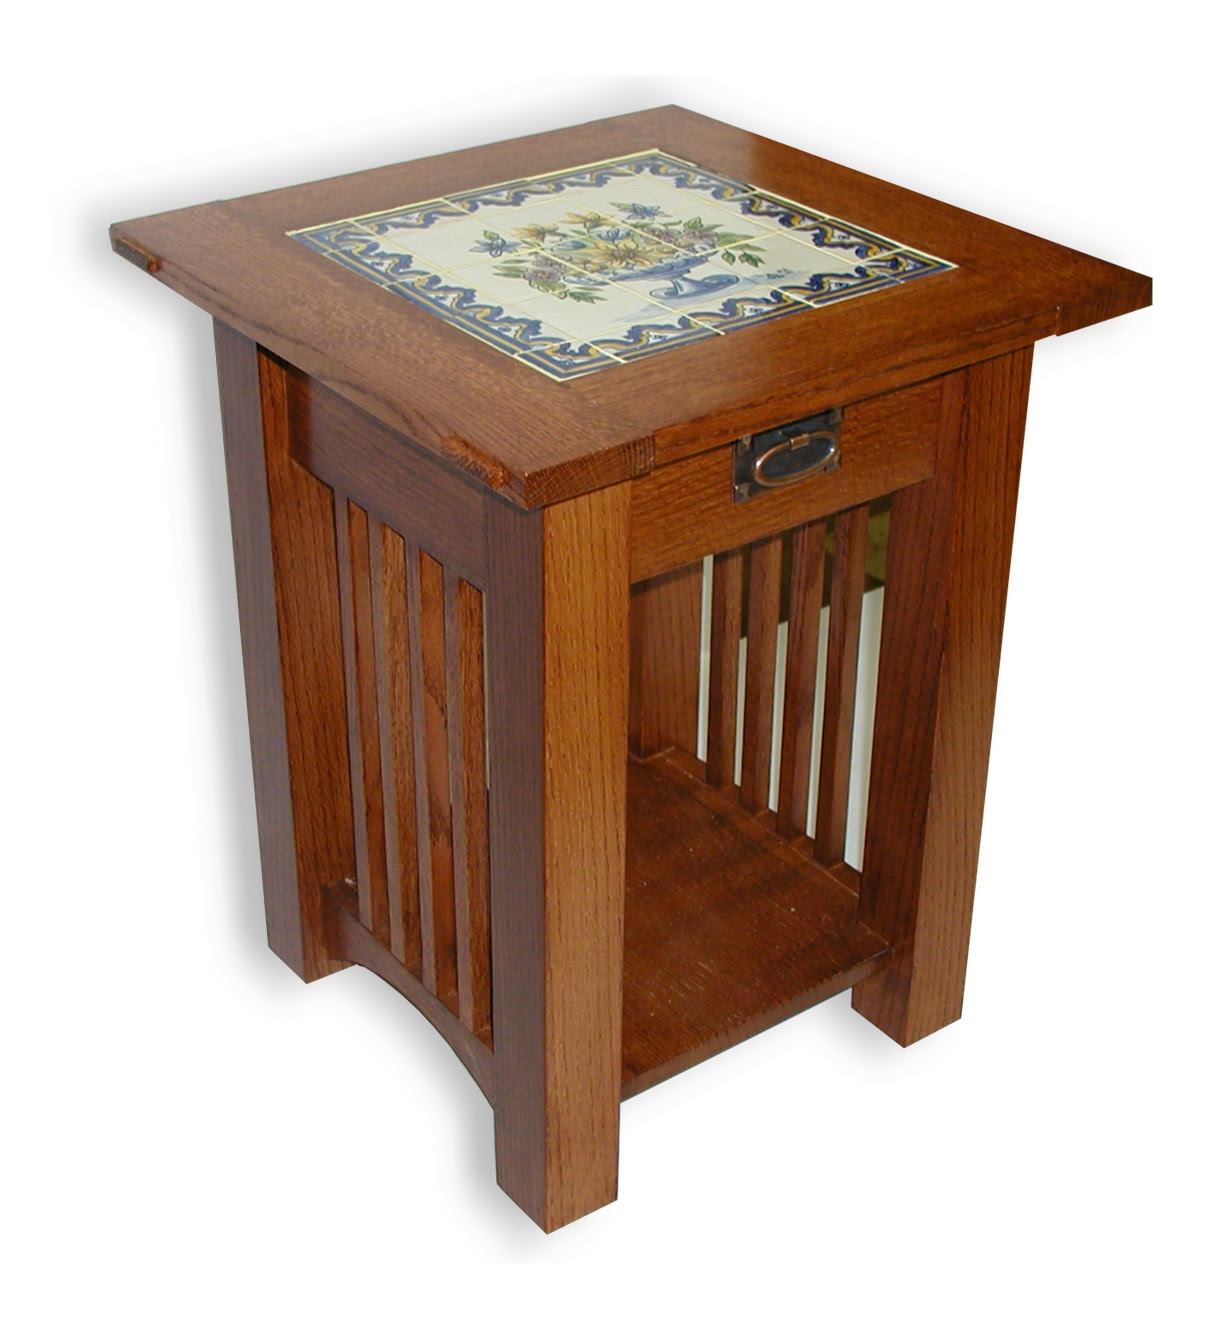 Mine Wood Complete Kitchen Table Free Woodworking Plans End Table